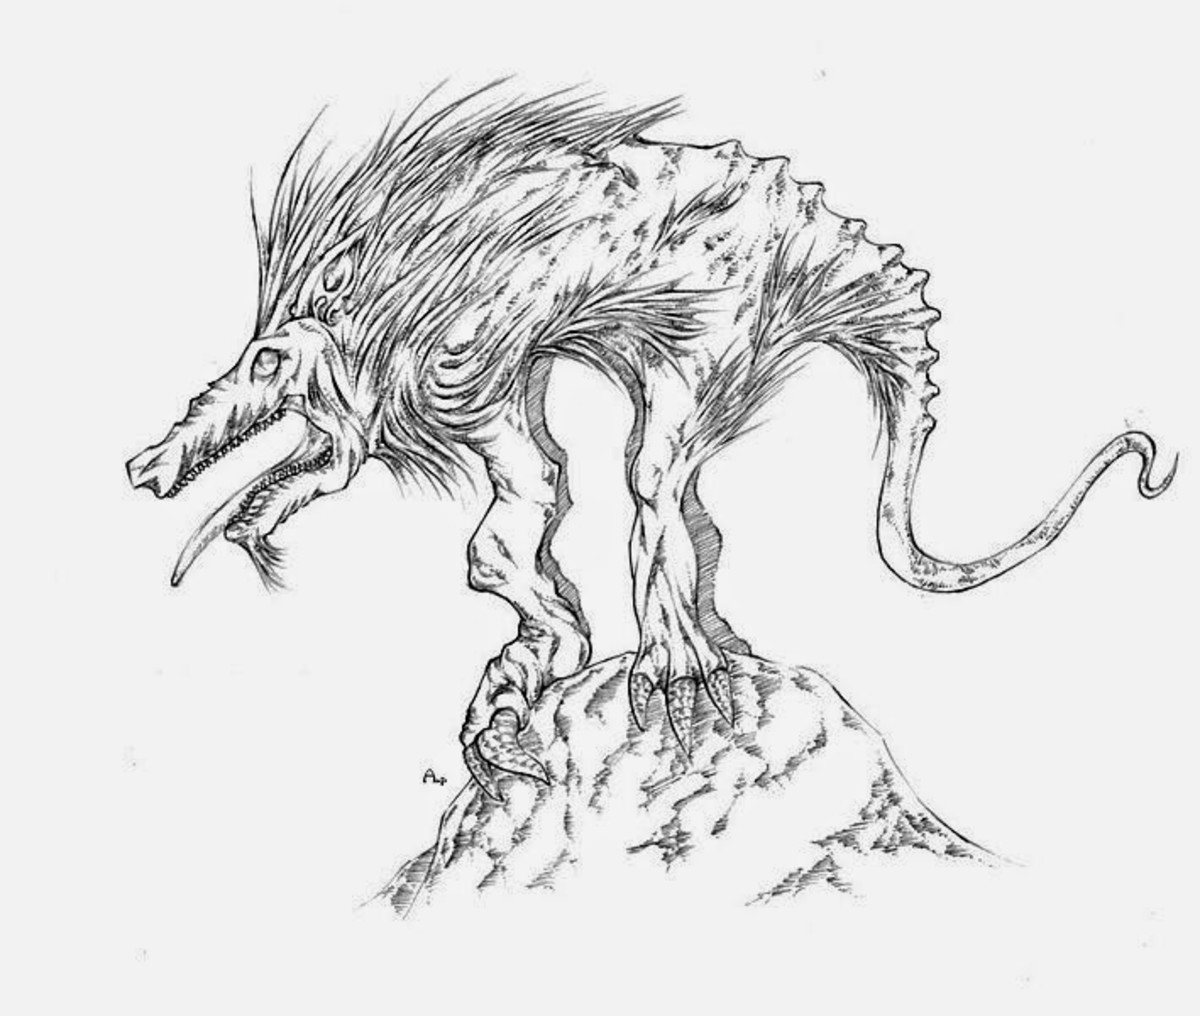 Another depiction of the Grunch.